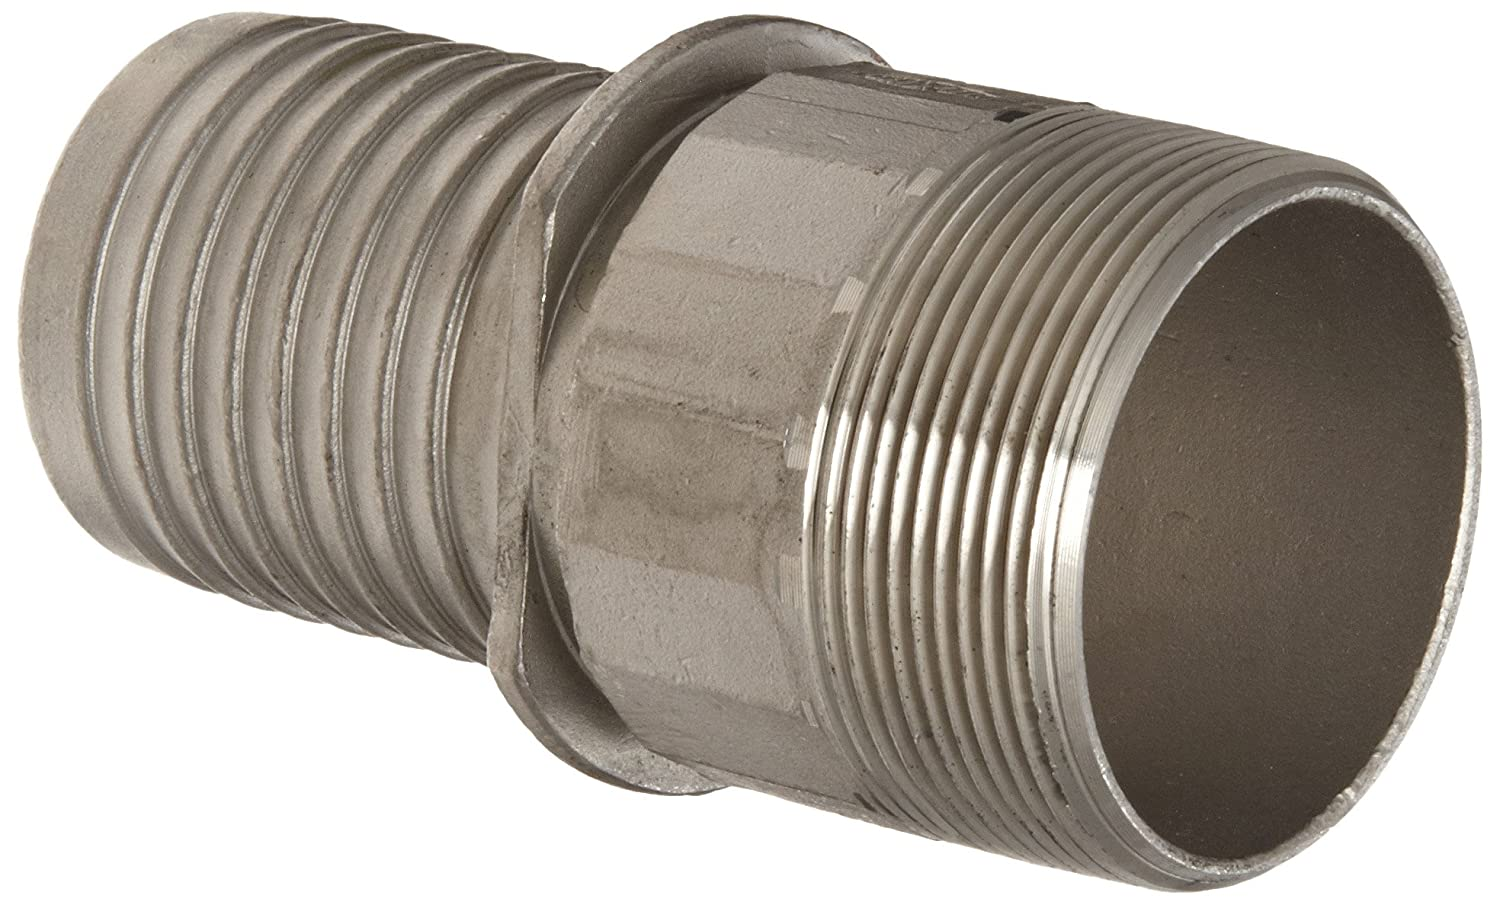 Dixon Holedall RST300NOS Stainless Steel 316 Hose Fitting External Swage Notched NOS Stem 3 NPT Male x 3-1//32 Hose ID Barbed 3 NPT Male x 3-1//32 Hose ID Barbed Dixon Valve /& Coupling